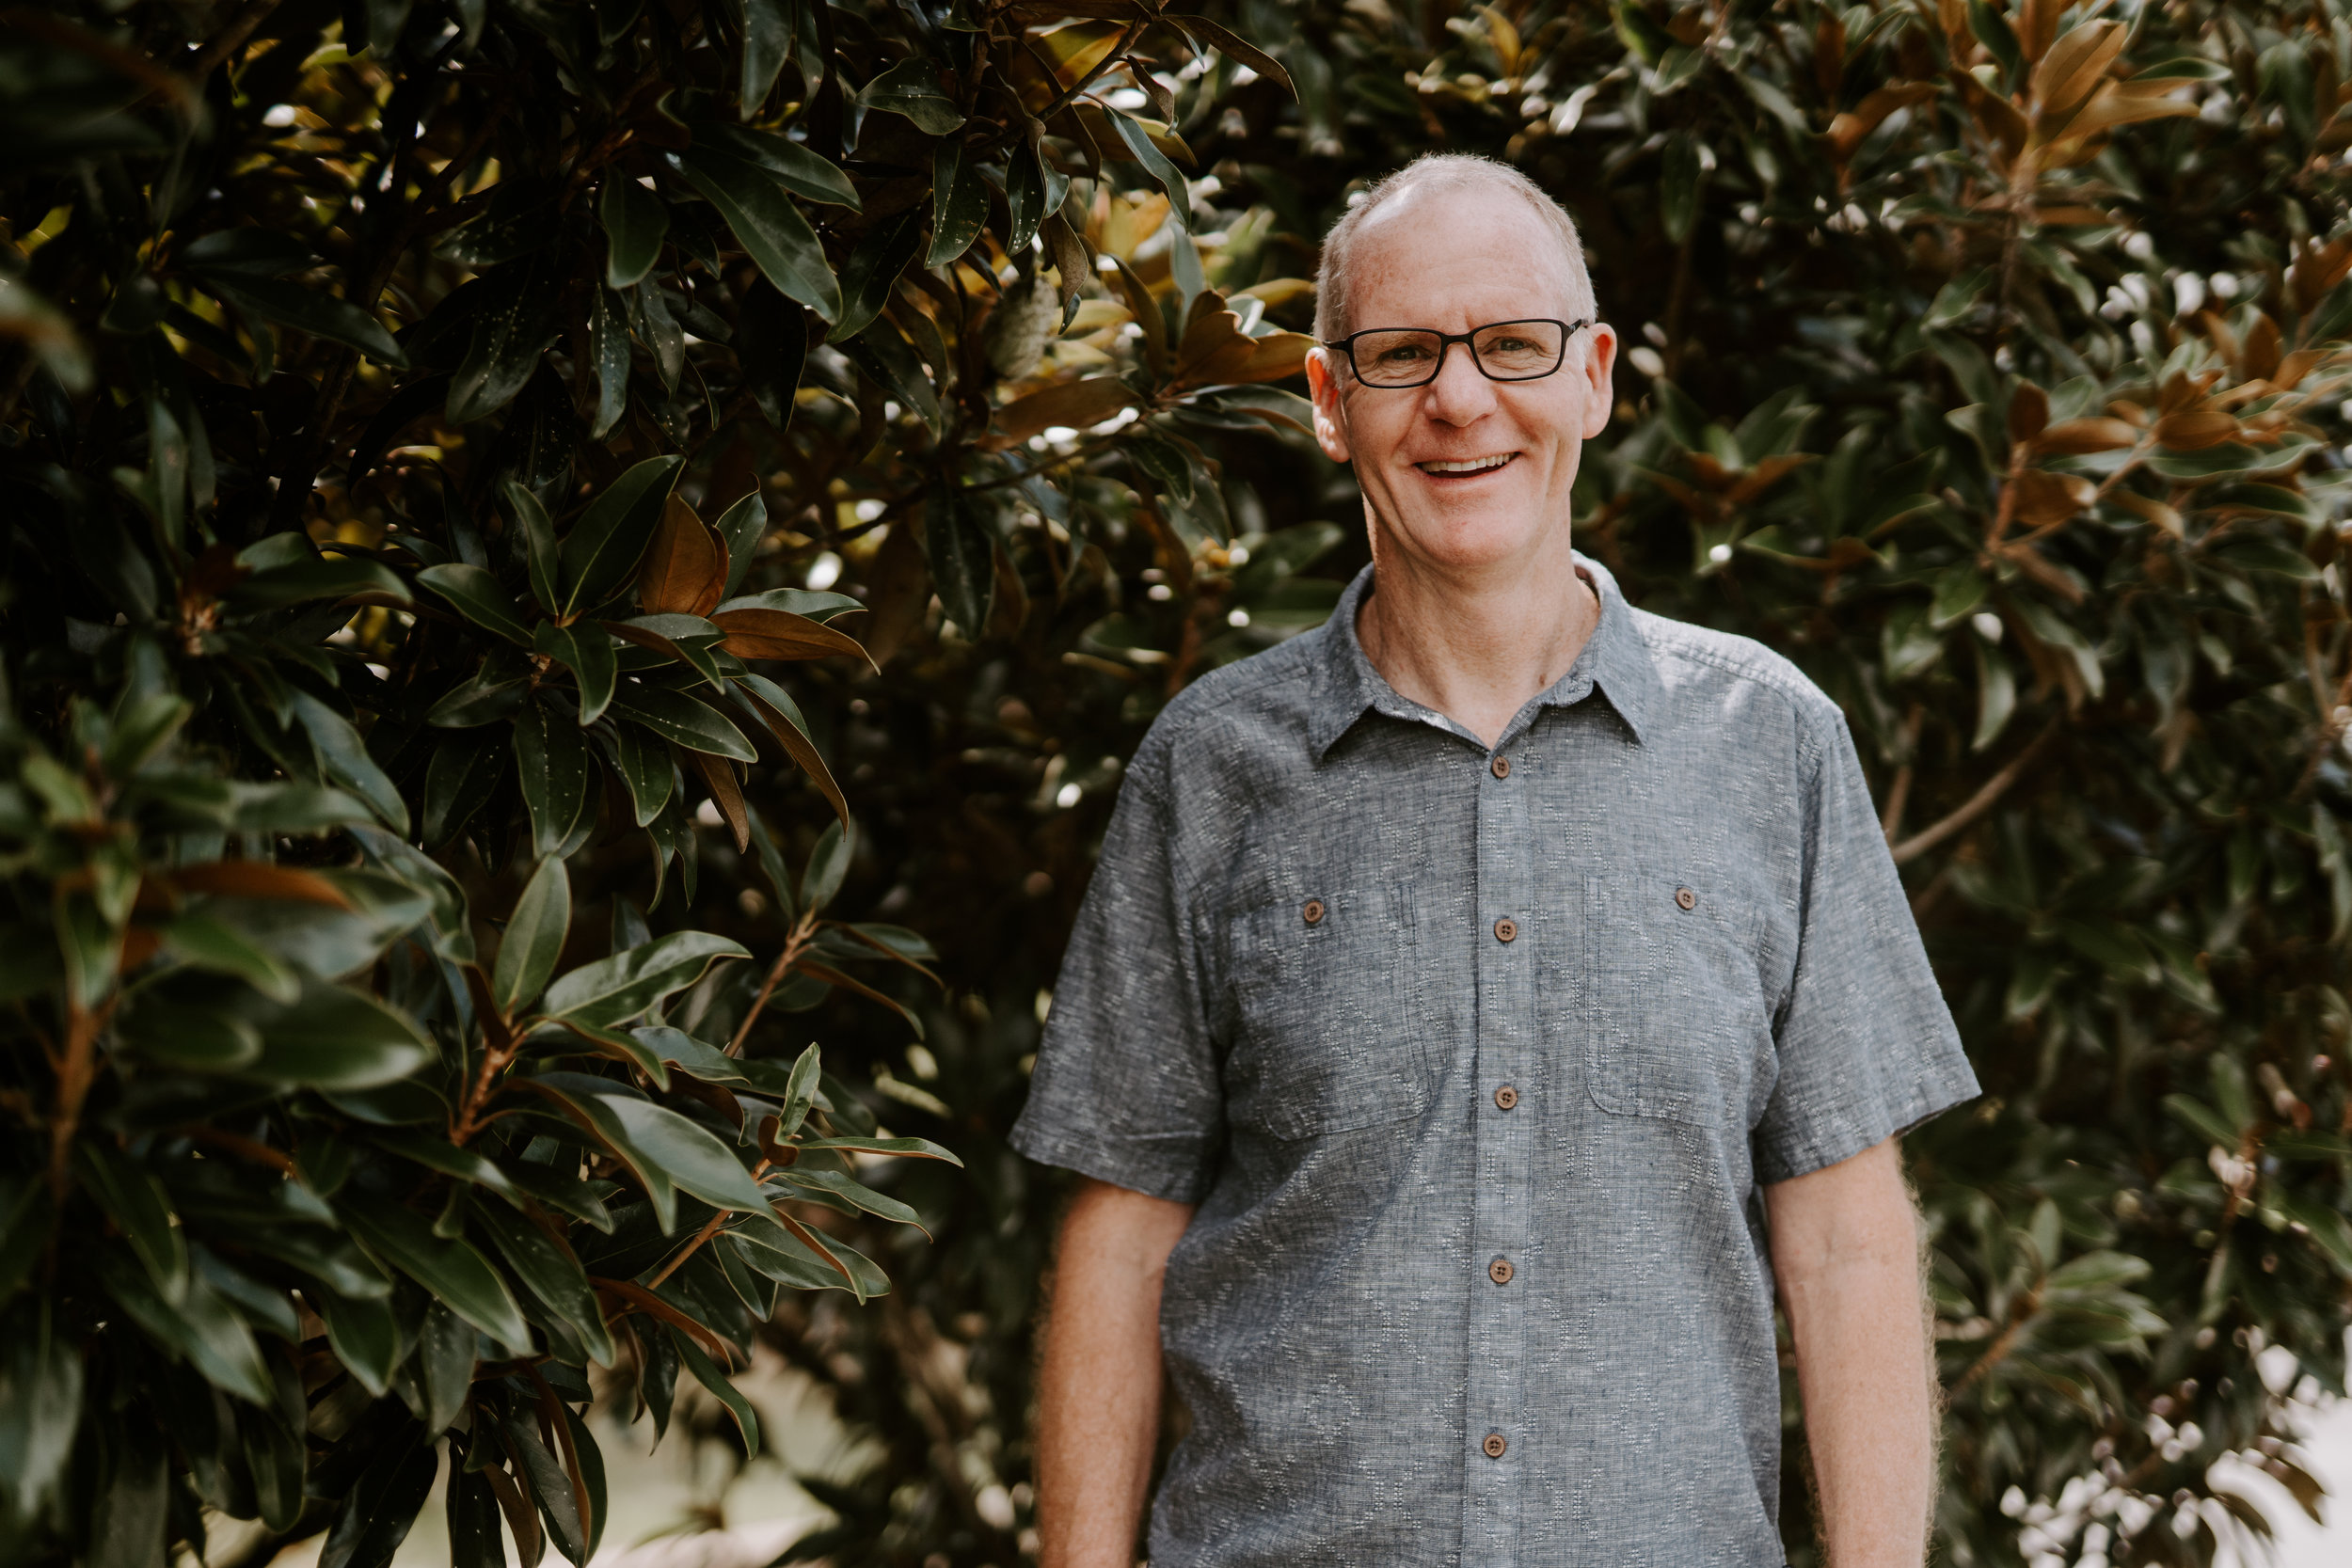 Jack Fisher, Director of Operations - As Director of Operations, Jack is responsible for working with the staff on a daily basis. He is also responsible for community groups and our efforts in serving Uganda.jack@cornerstonebuzz.org